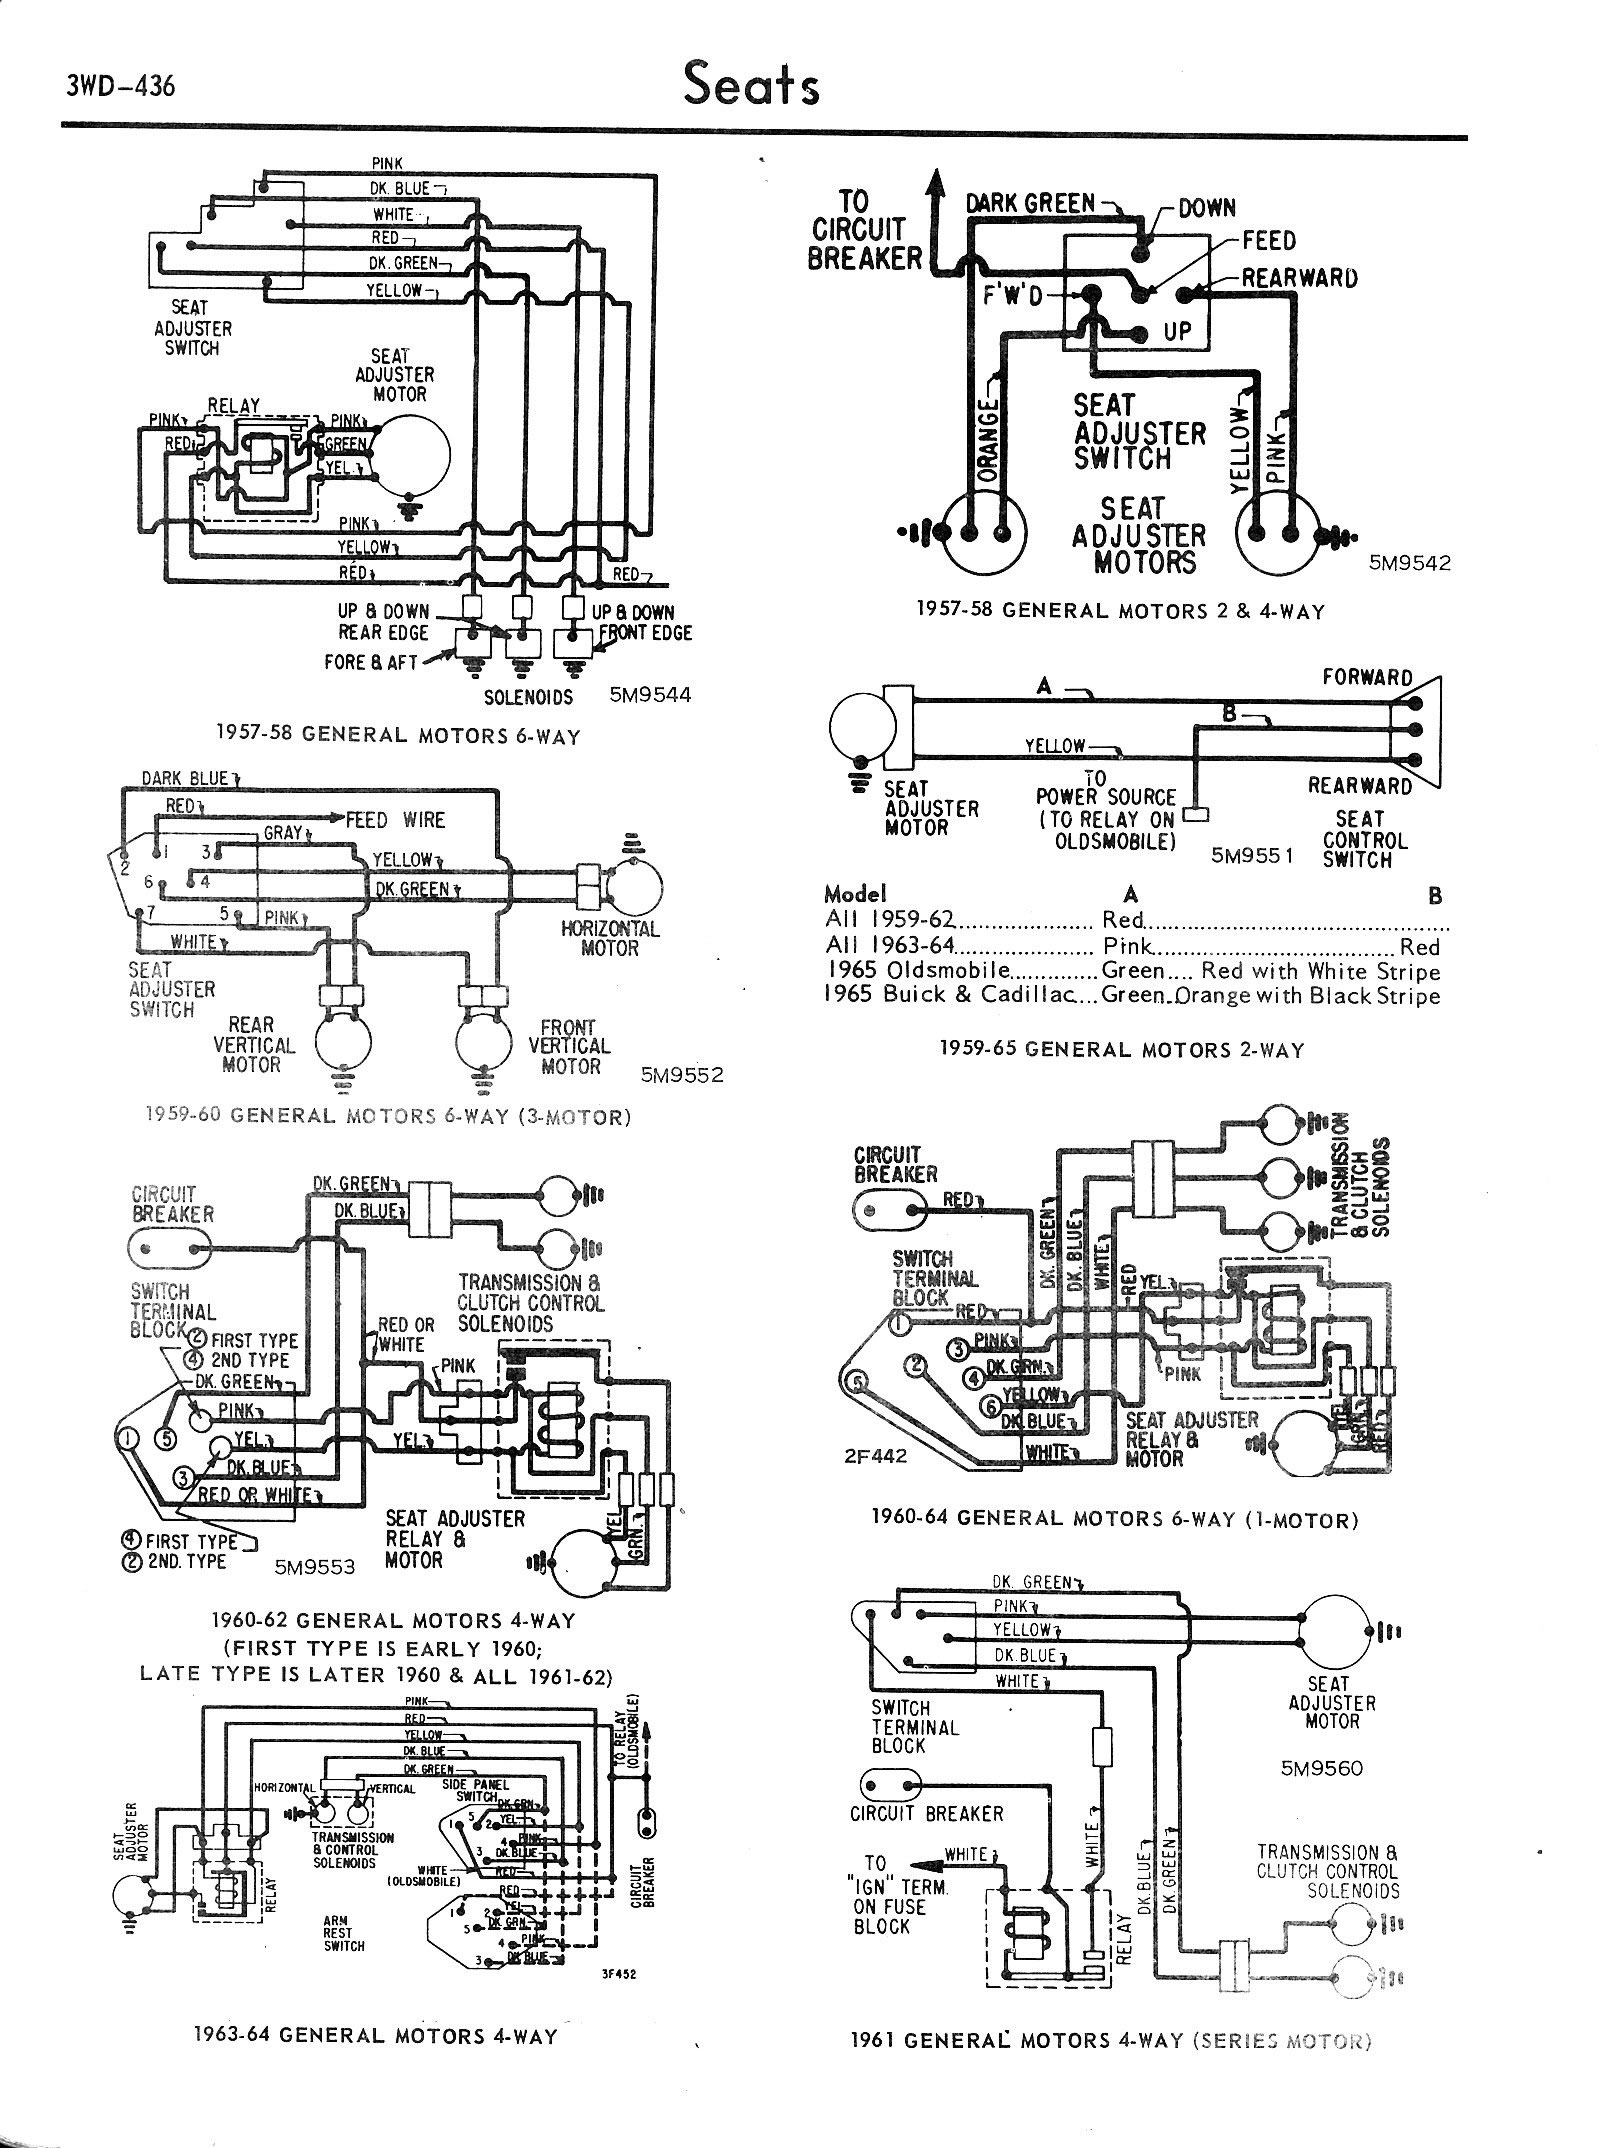 Chevy Diagrams 64 Pickup Wiring Diagram C 57 Gm A Mix Of 2 Way 4 6